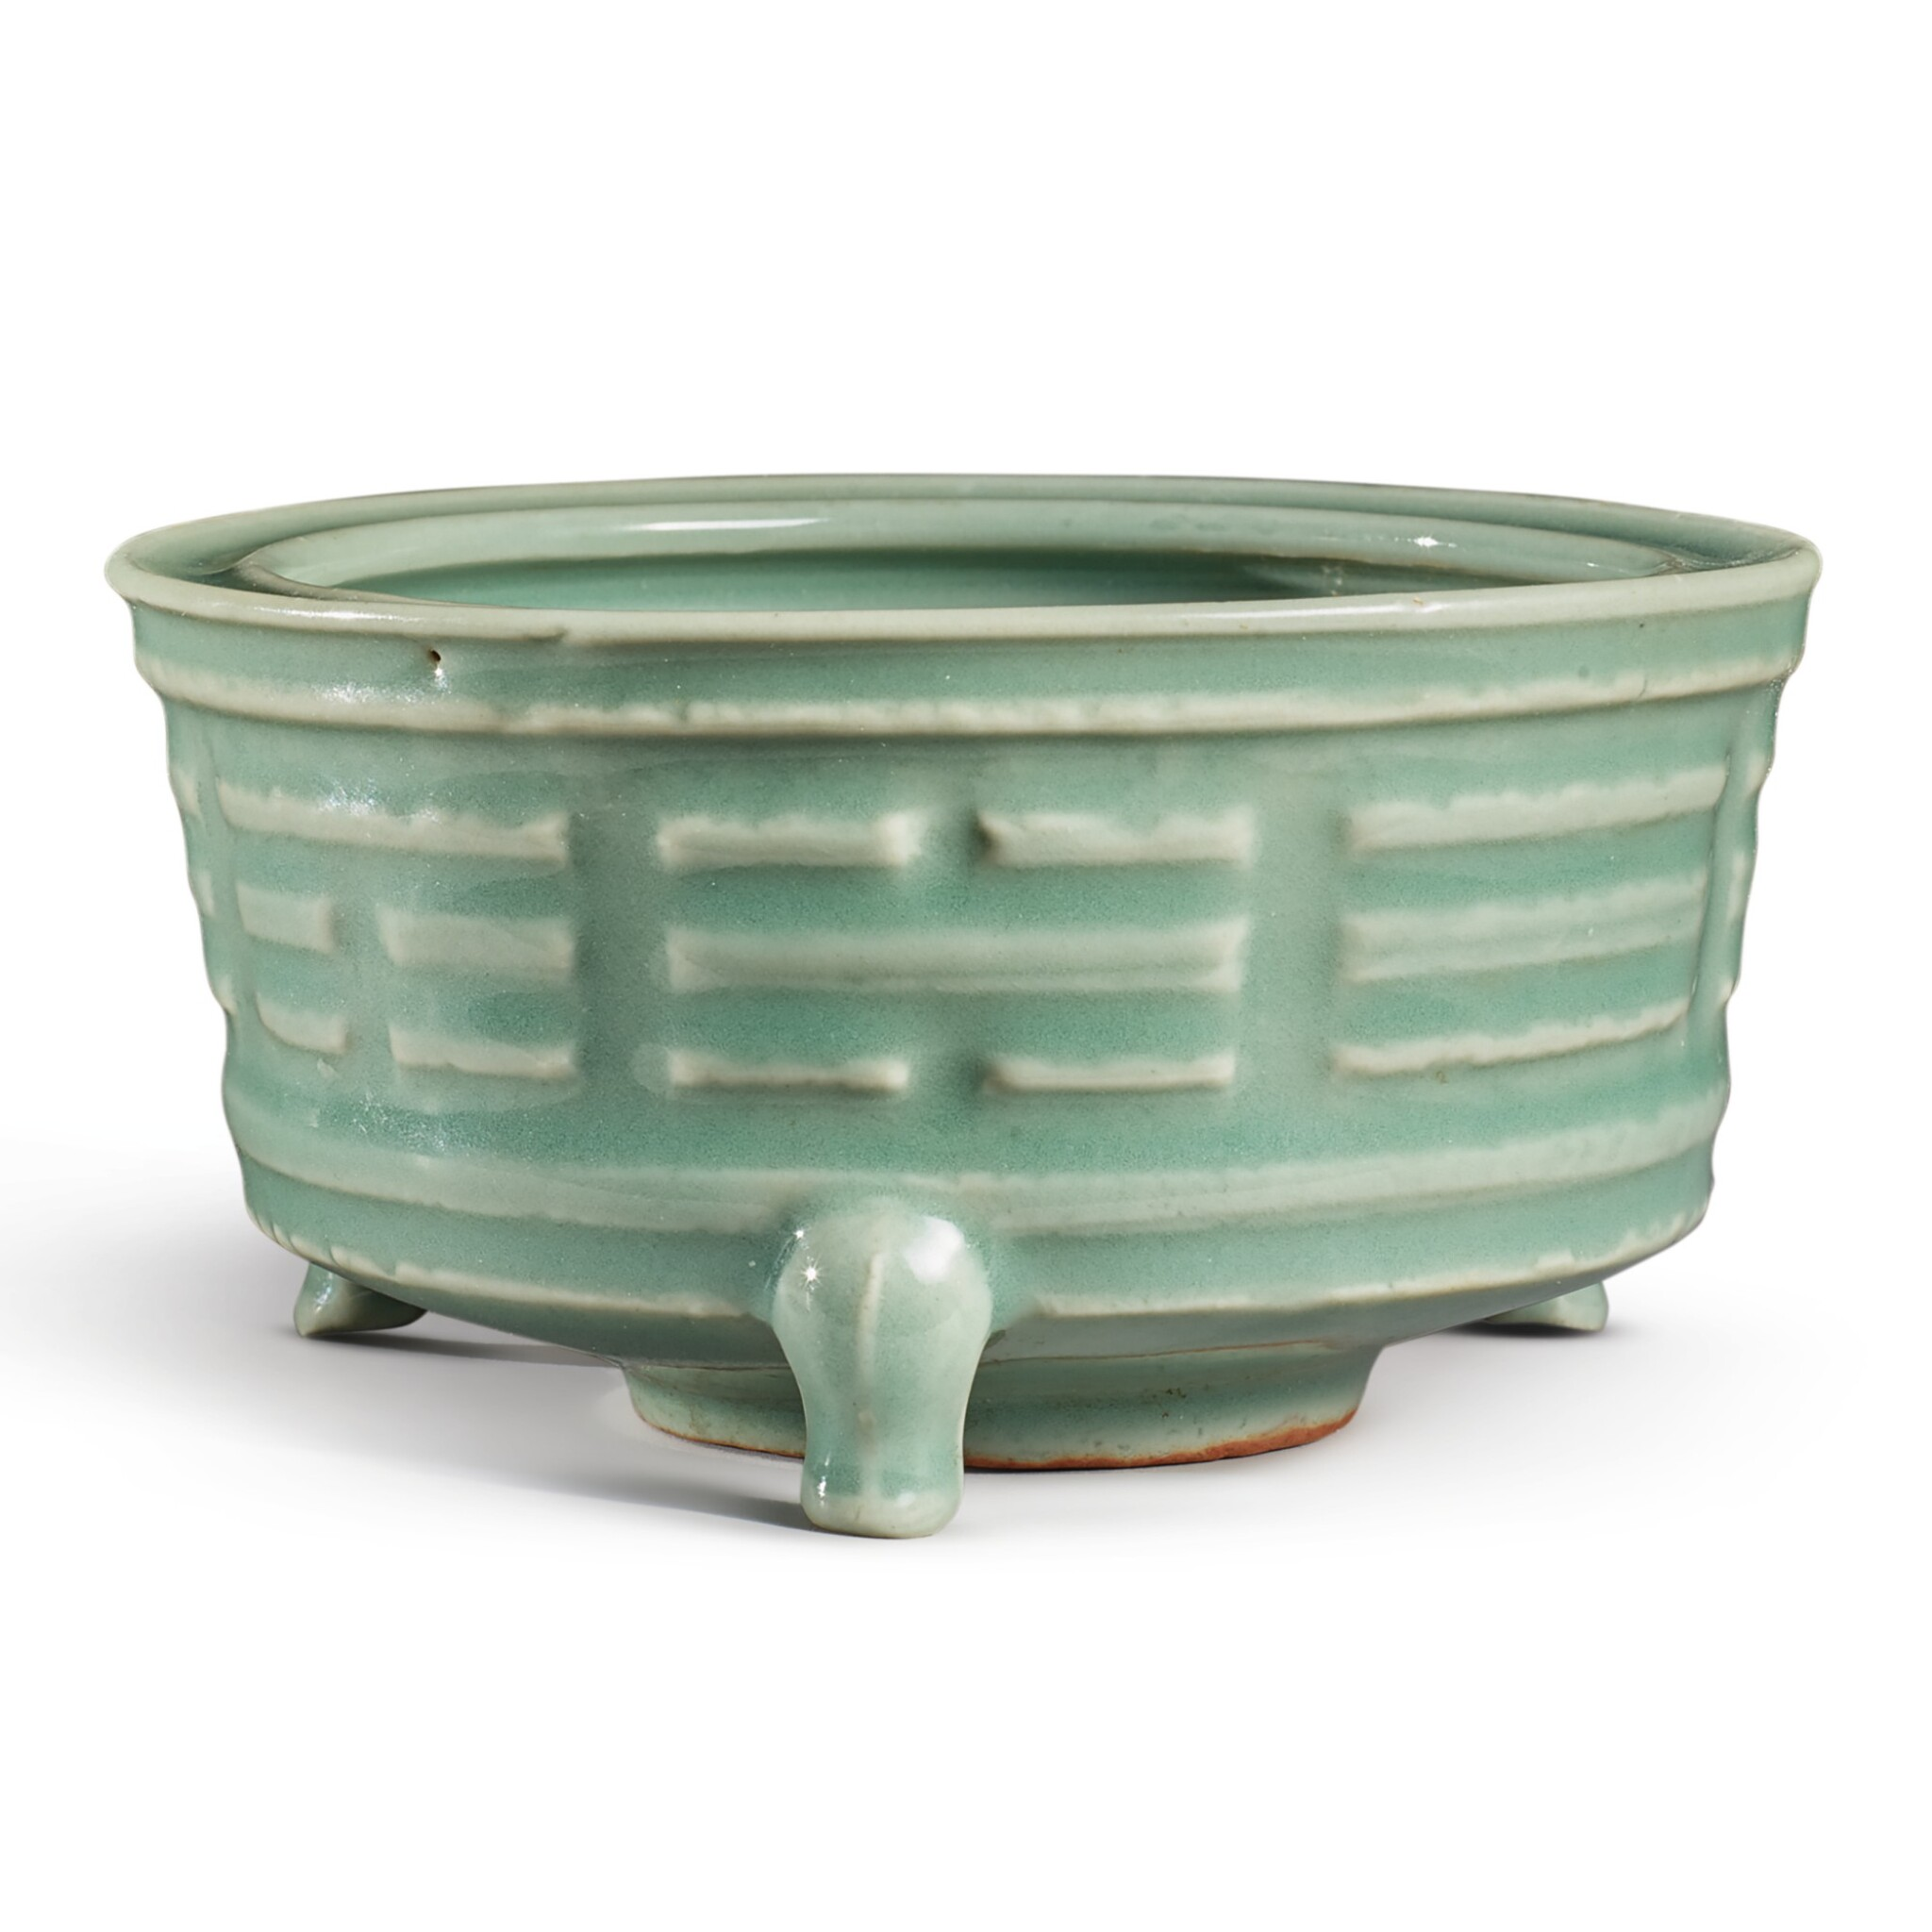 View full screen - View 1 of Lot 115. A 'Longquan' celadon-glazed 'trigram' censer, Southern Song / Yuan dynasty   南宋 / 元 龍泉窰青釉八卦紋奩式爐.